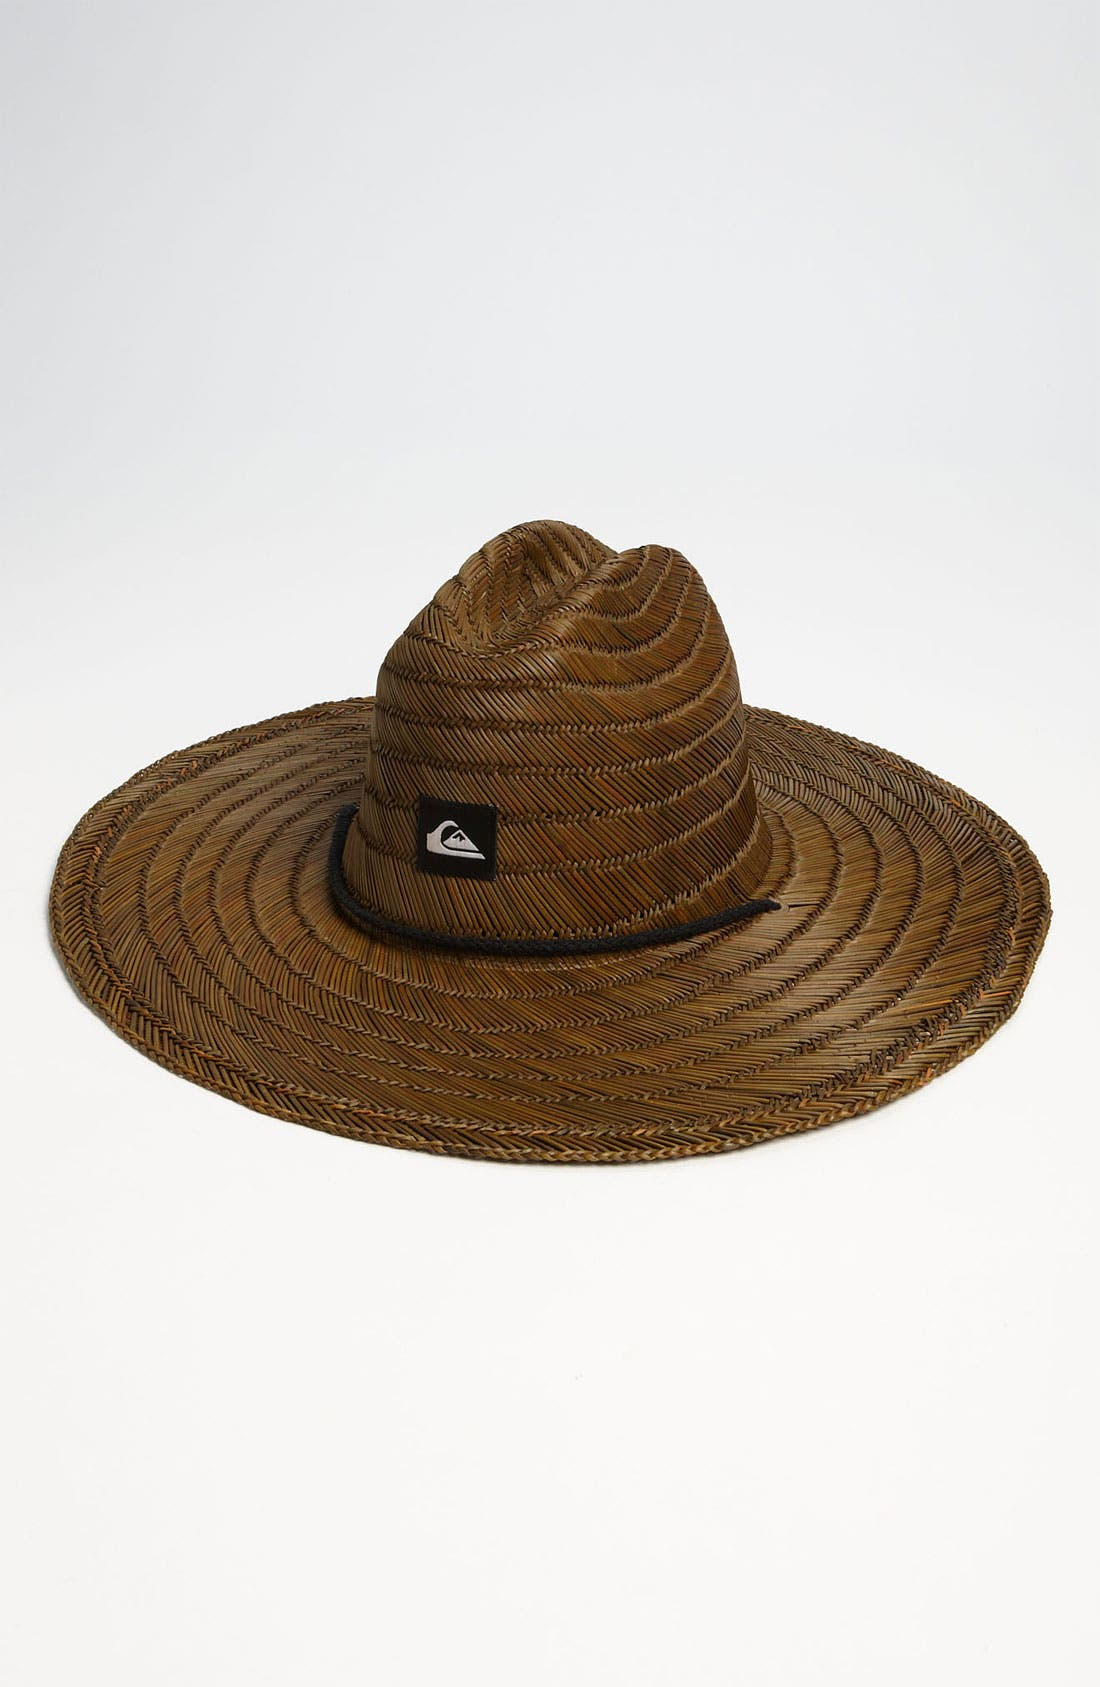 Alternate Image 1 Selected - Quiksilver 'Pierside' Straw Hat